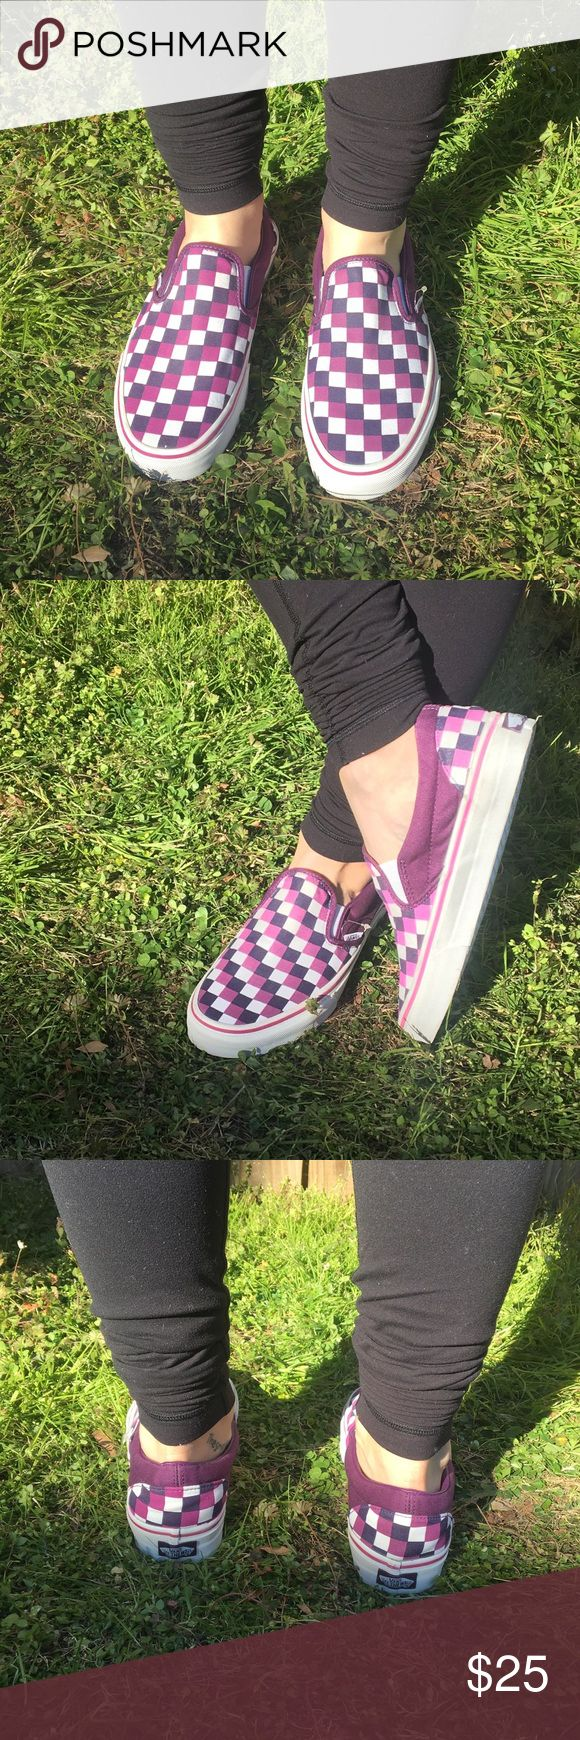 Checkered Vans Like New! Checkered slip on vans women's 9 1/2 Tiffany blue on the inside purple white and plum colors on the outside. Only worn once excellent condition. Really fresh and rubber is super white! Vans Shoes Sneakers